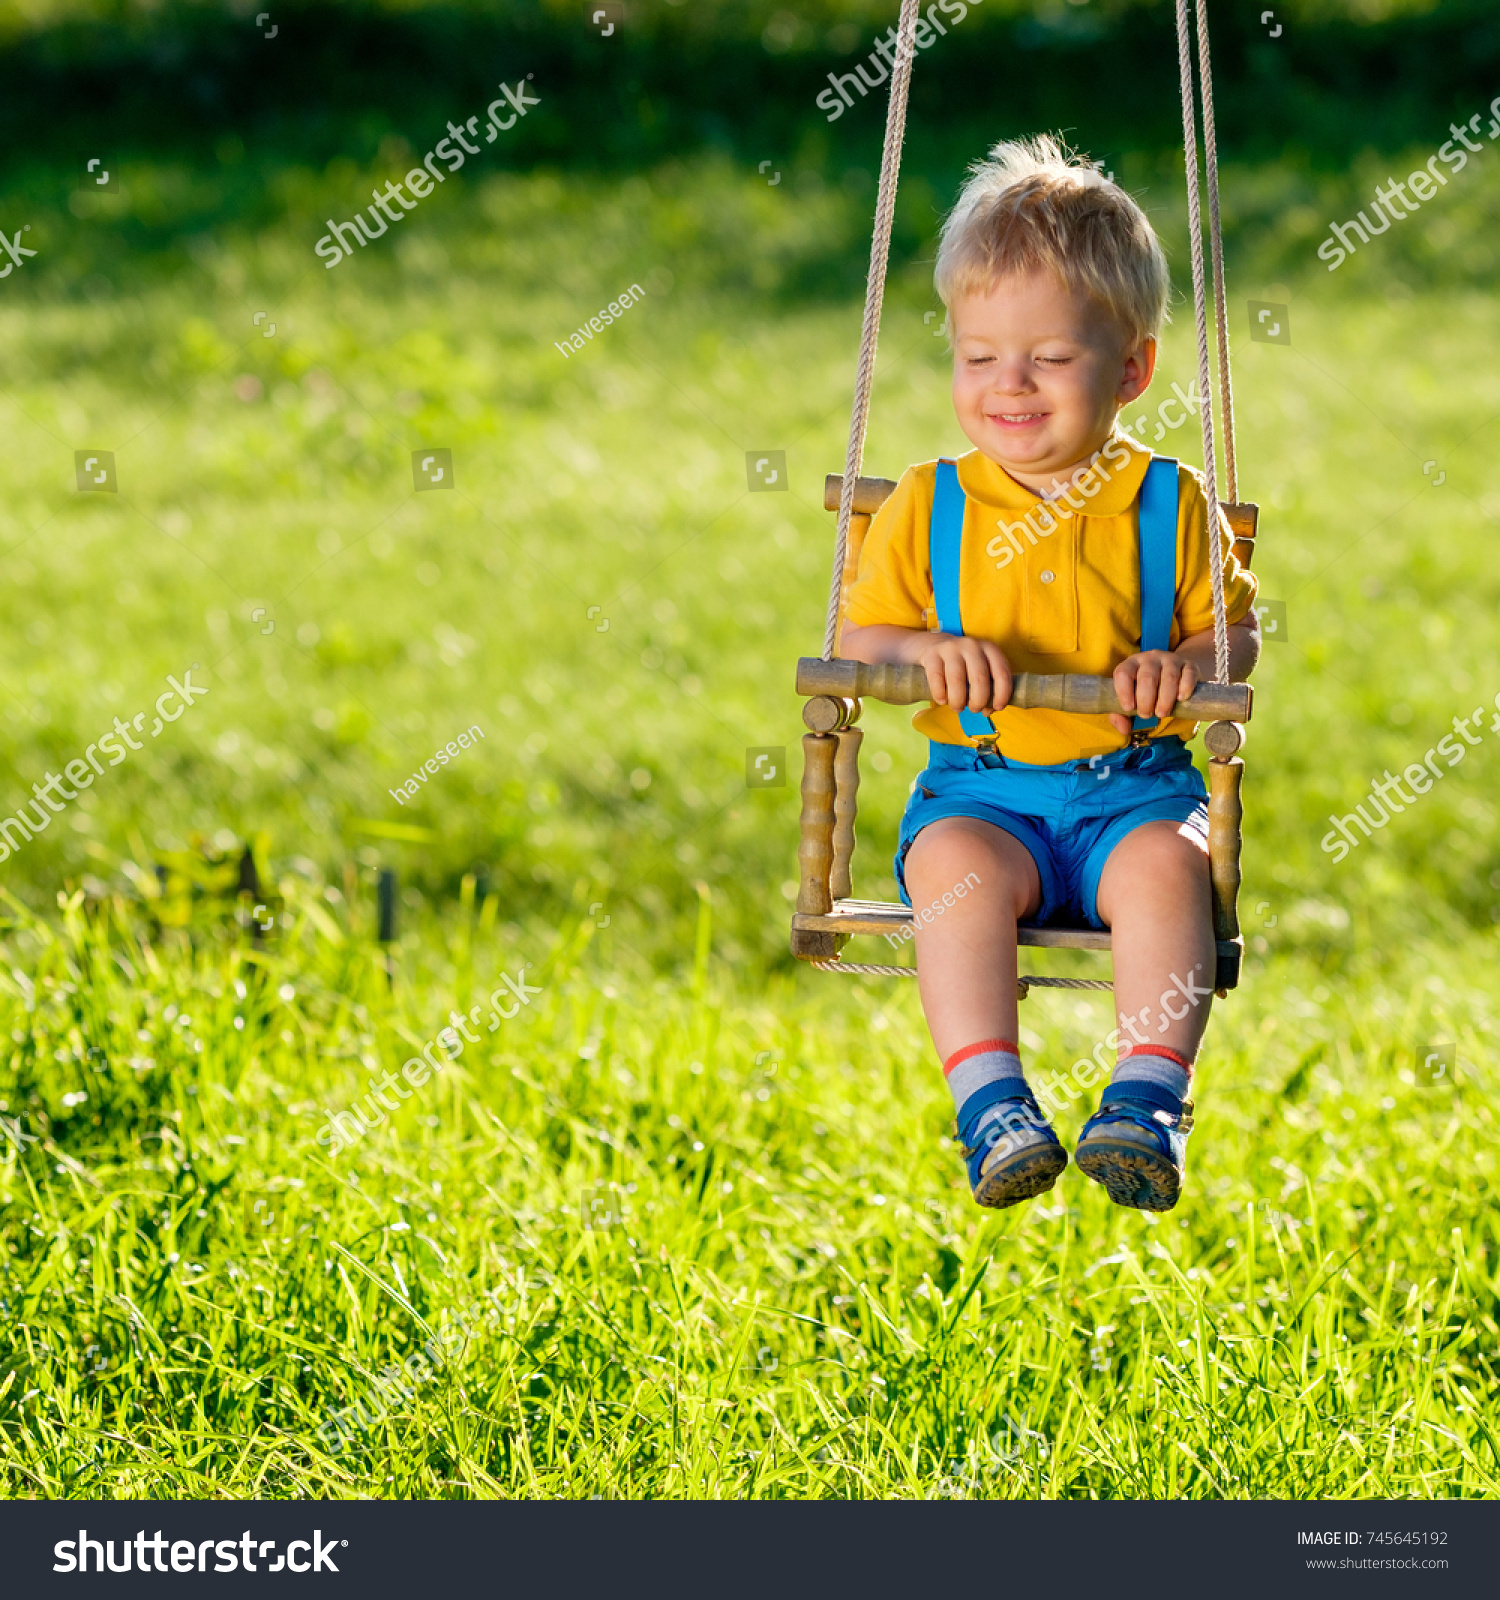 Portrait Toddler Child Swinging Outdoors Rural Stock